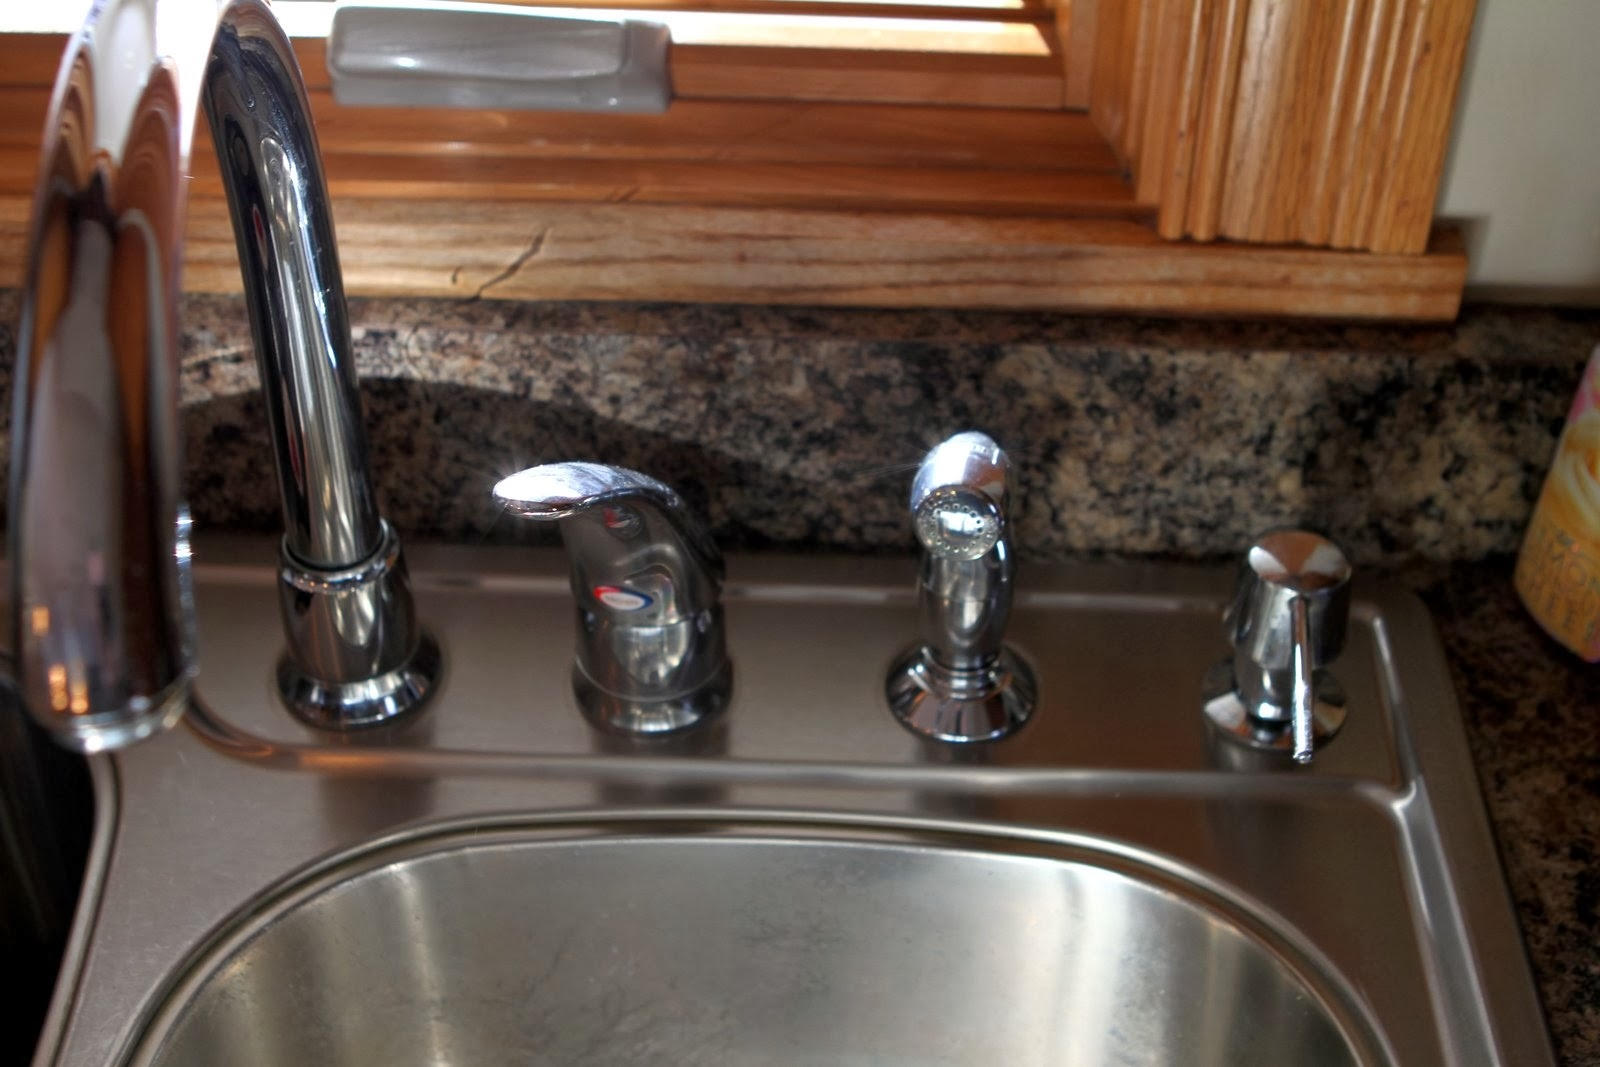 Ideas, moen 1225 kitchen faucet cartridge repair or replacement throughout size 1600 x 1067  .